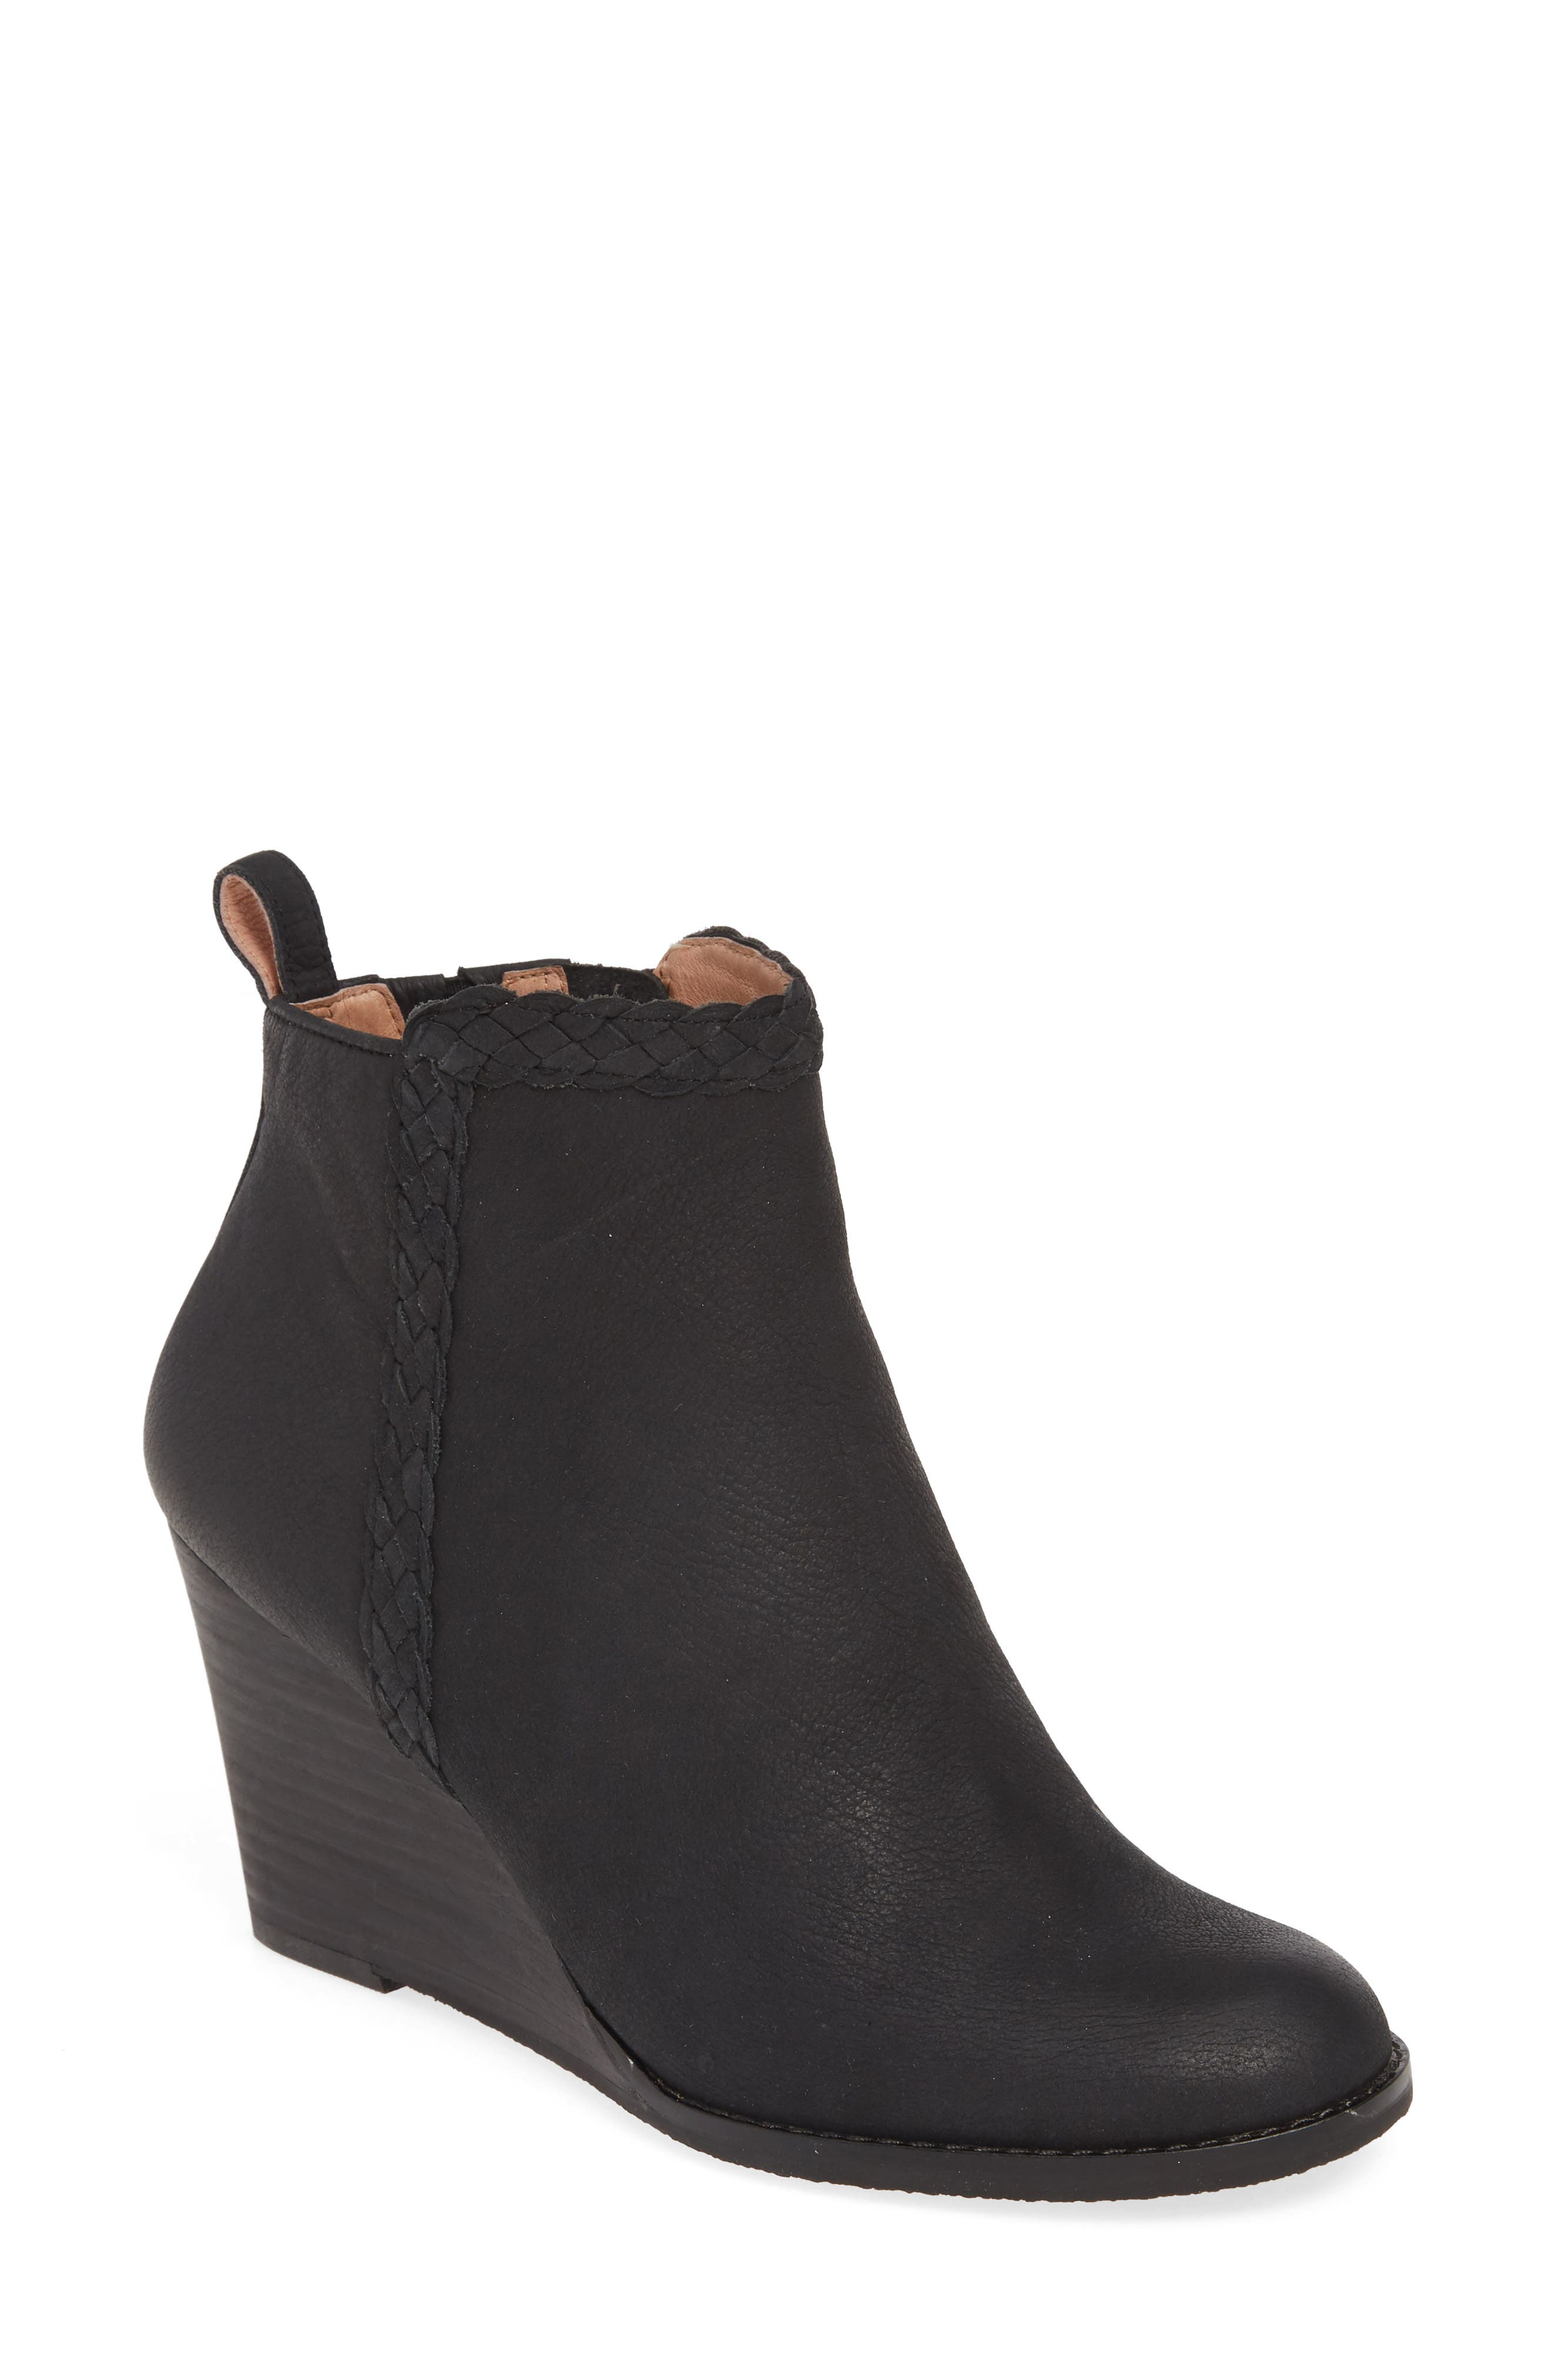 Women's Wedge Booties & Ankle Boots Nordstrom  Nordstrom